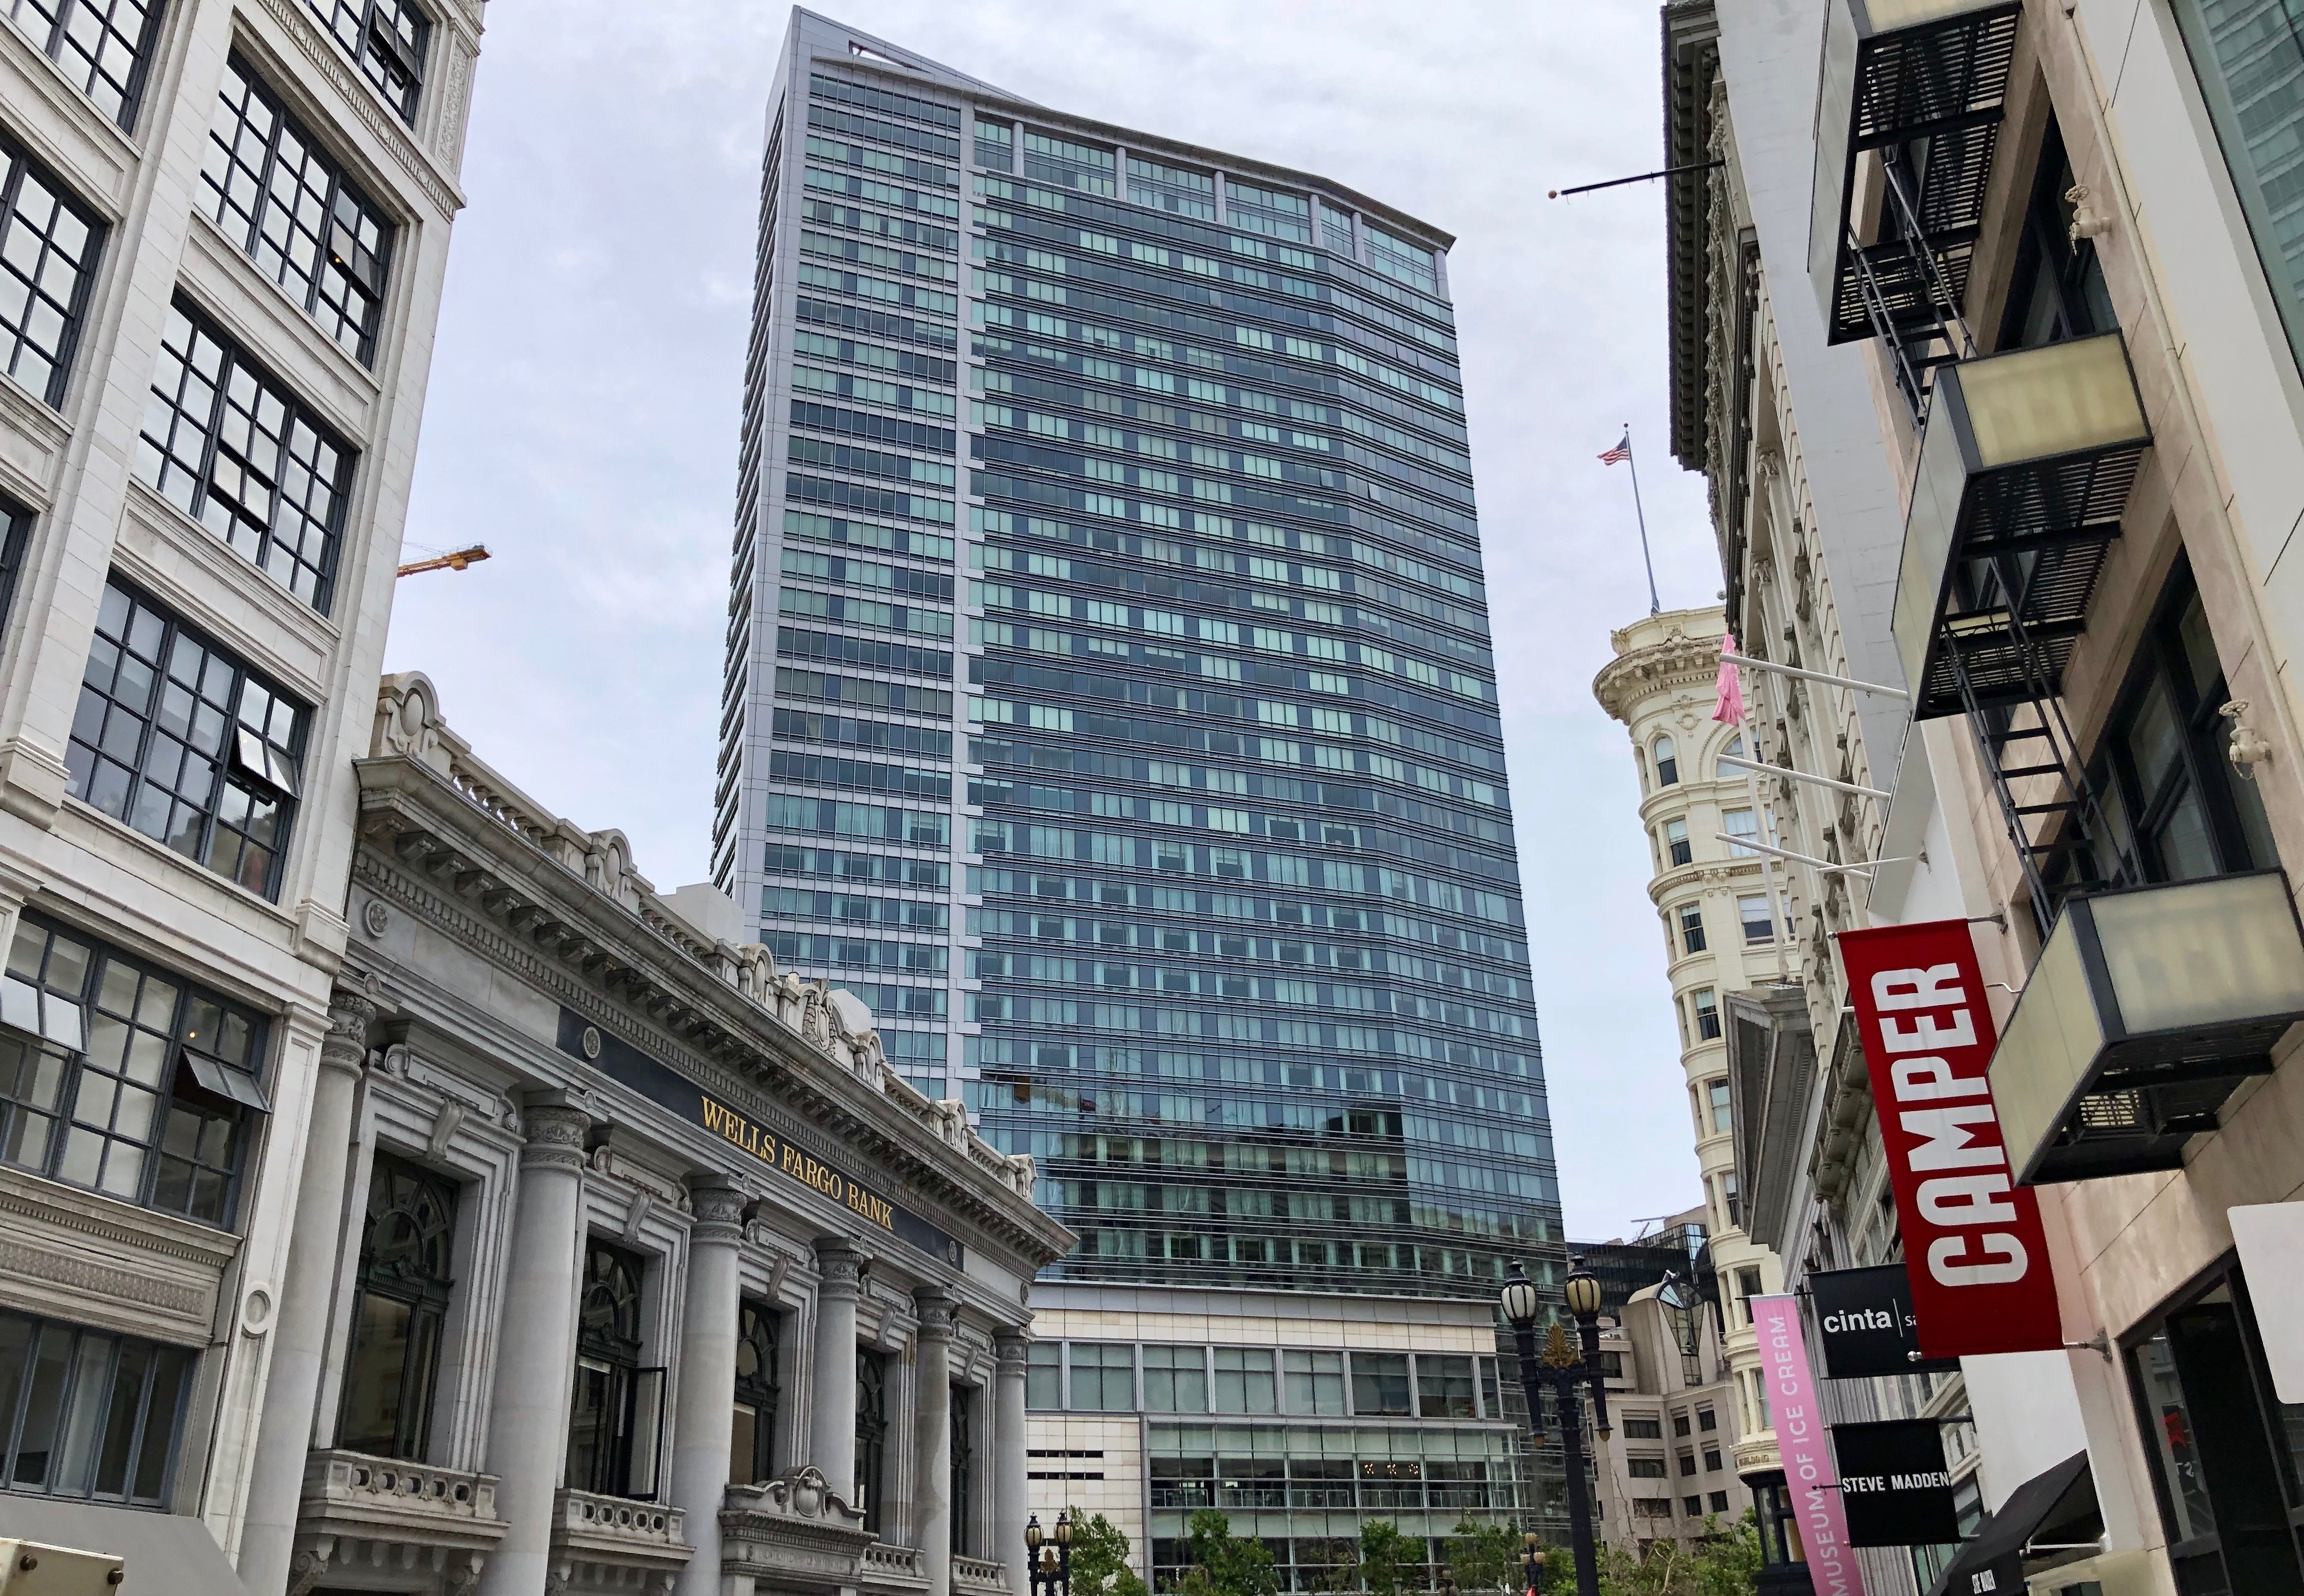 A gleaming, gray high-rise with a glass wall sits at the end of a street in a financial district.